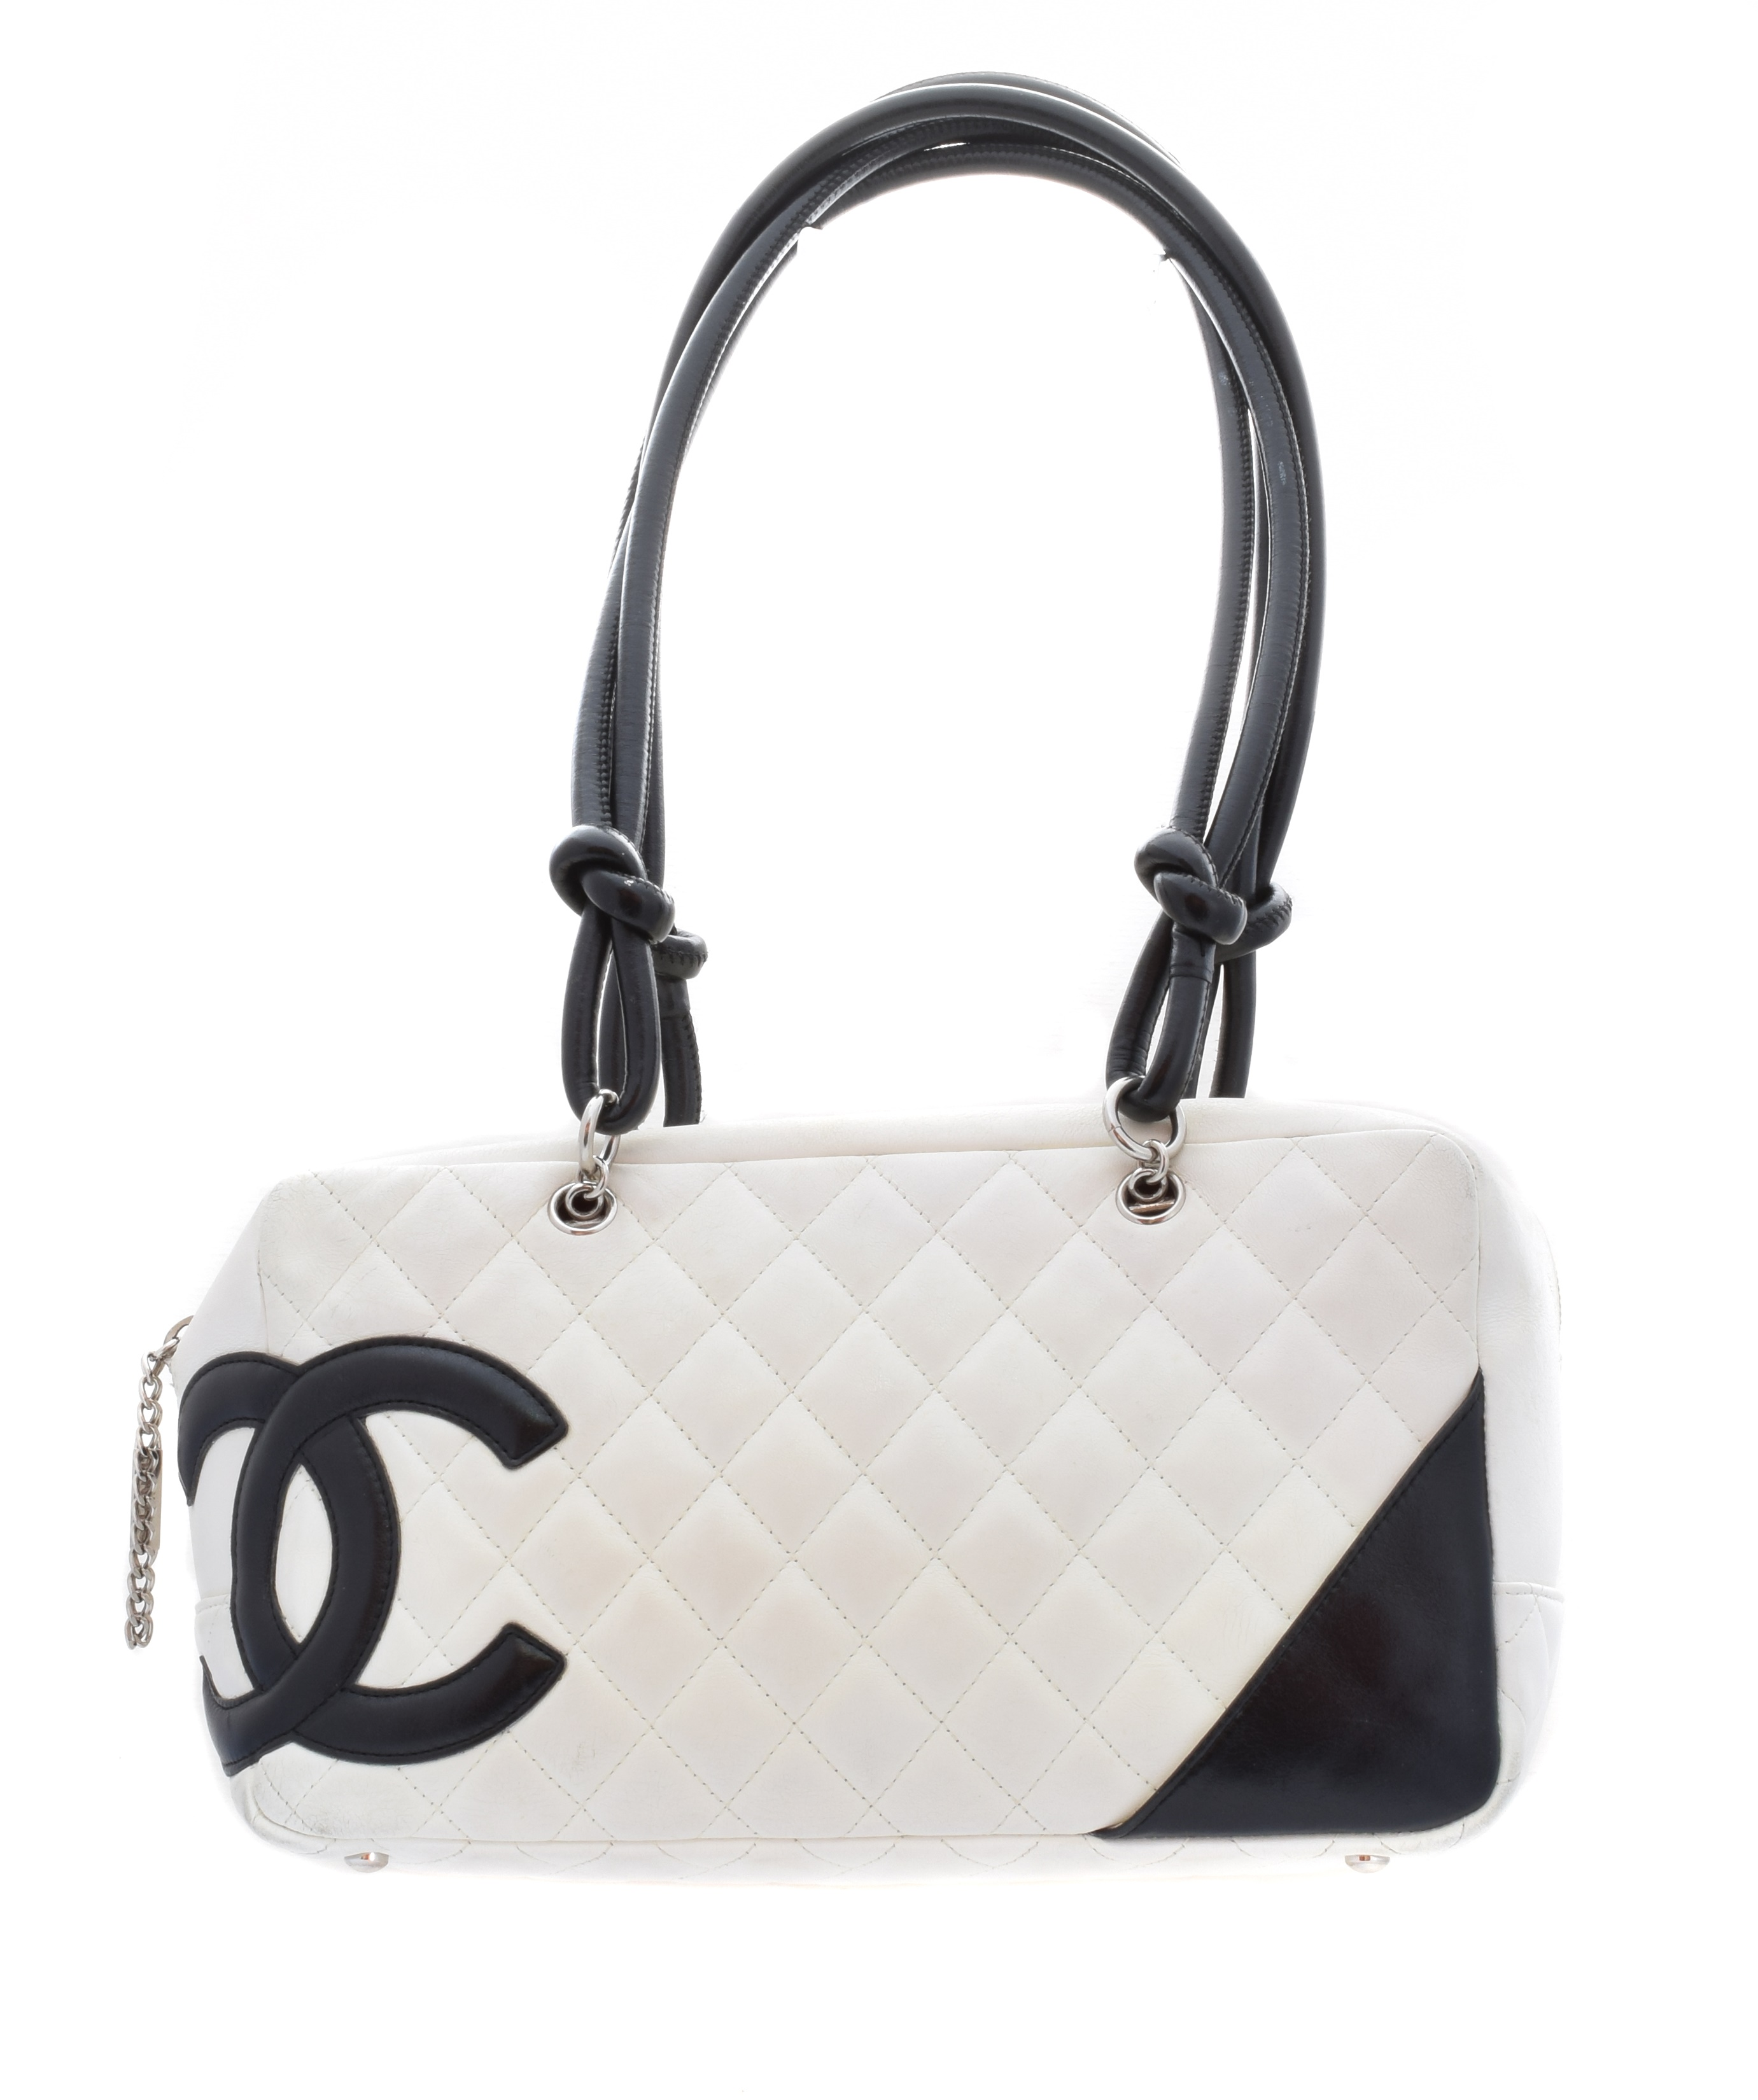 A Chanel Cambon Bowling Tote Shoulder Bag,